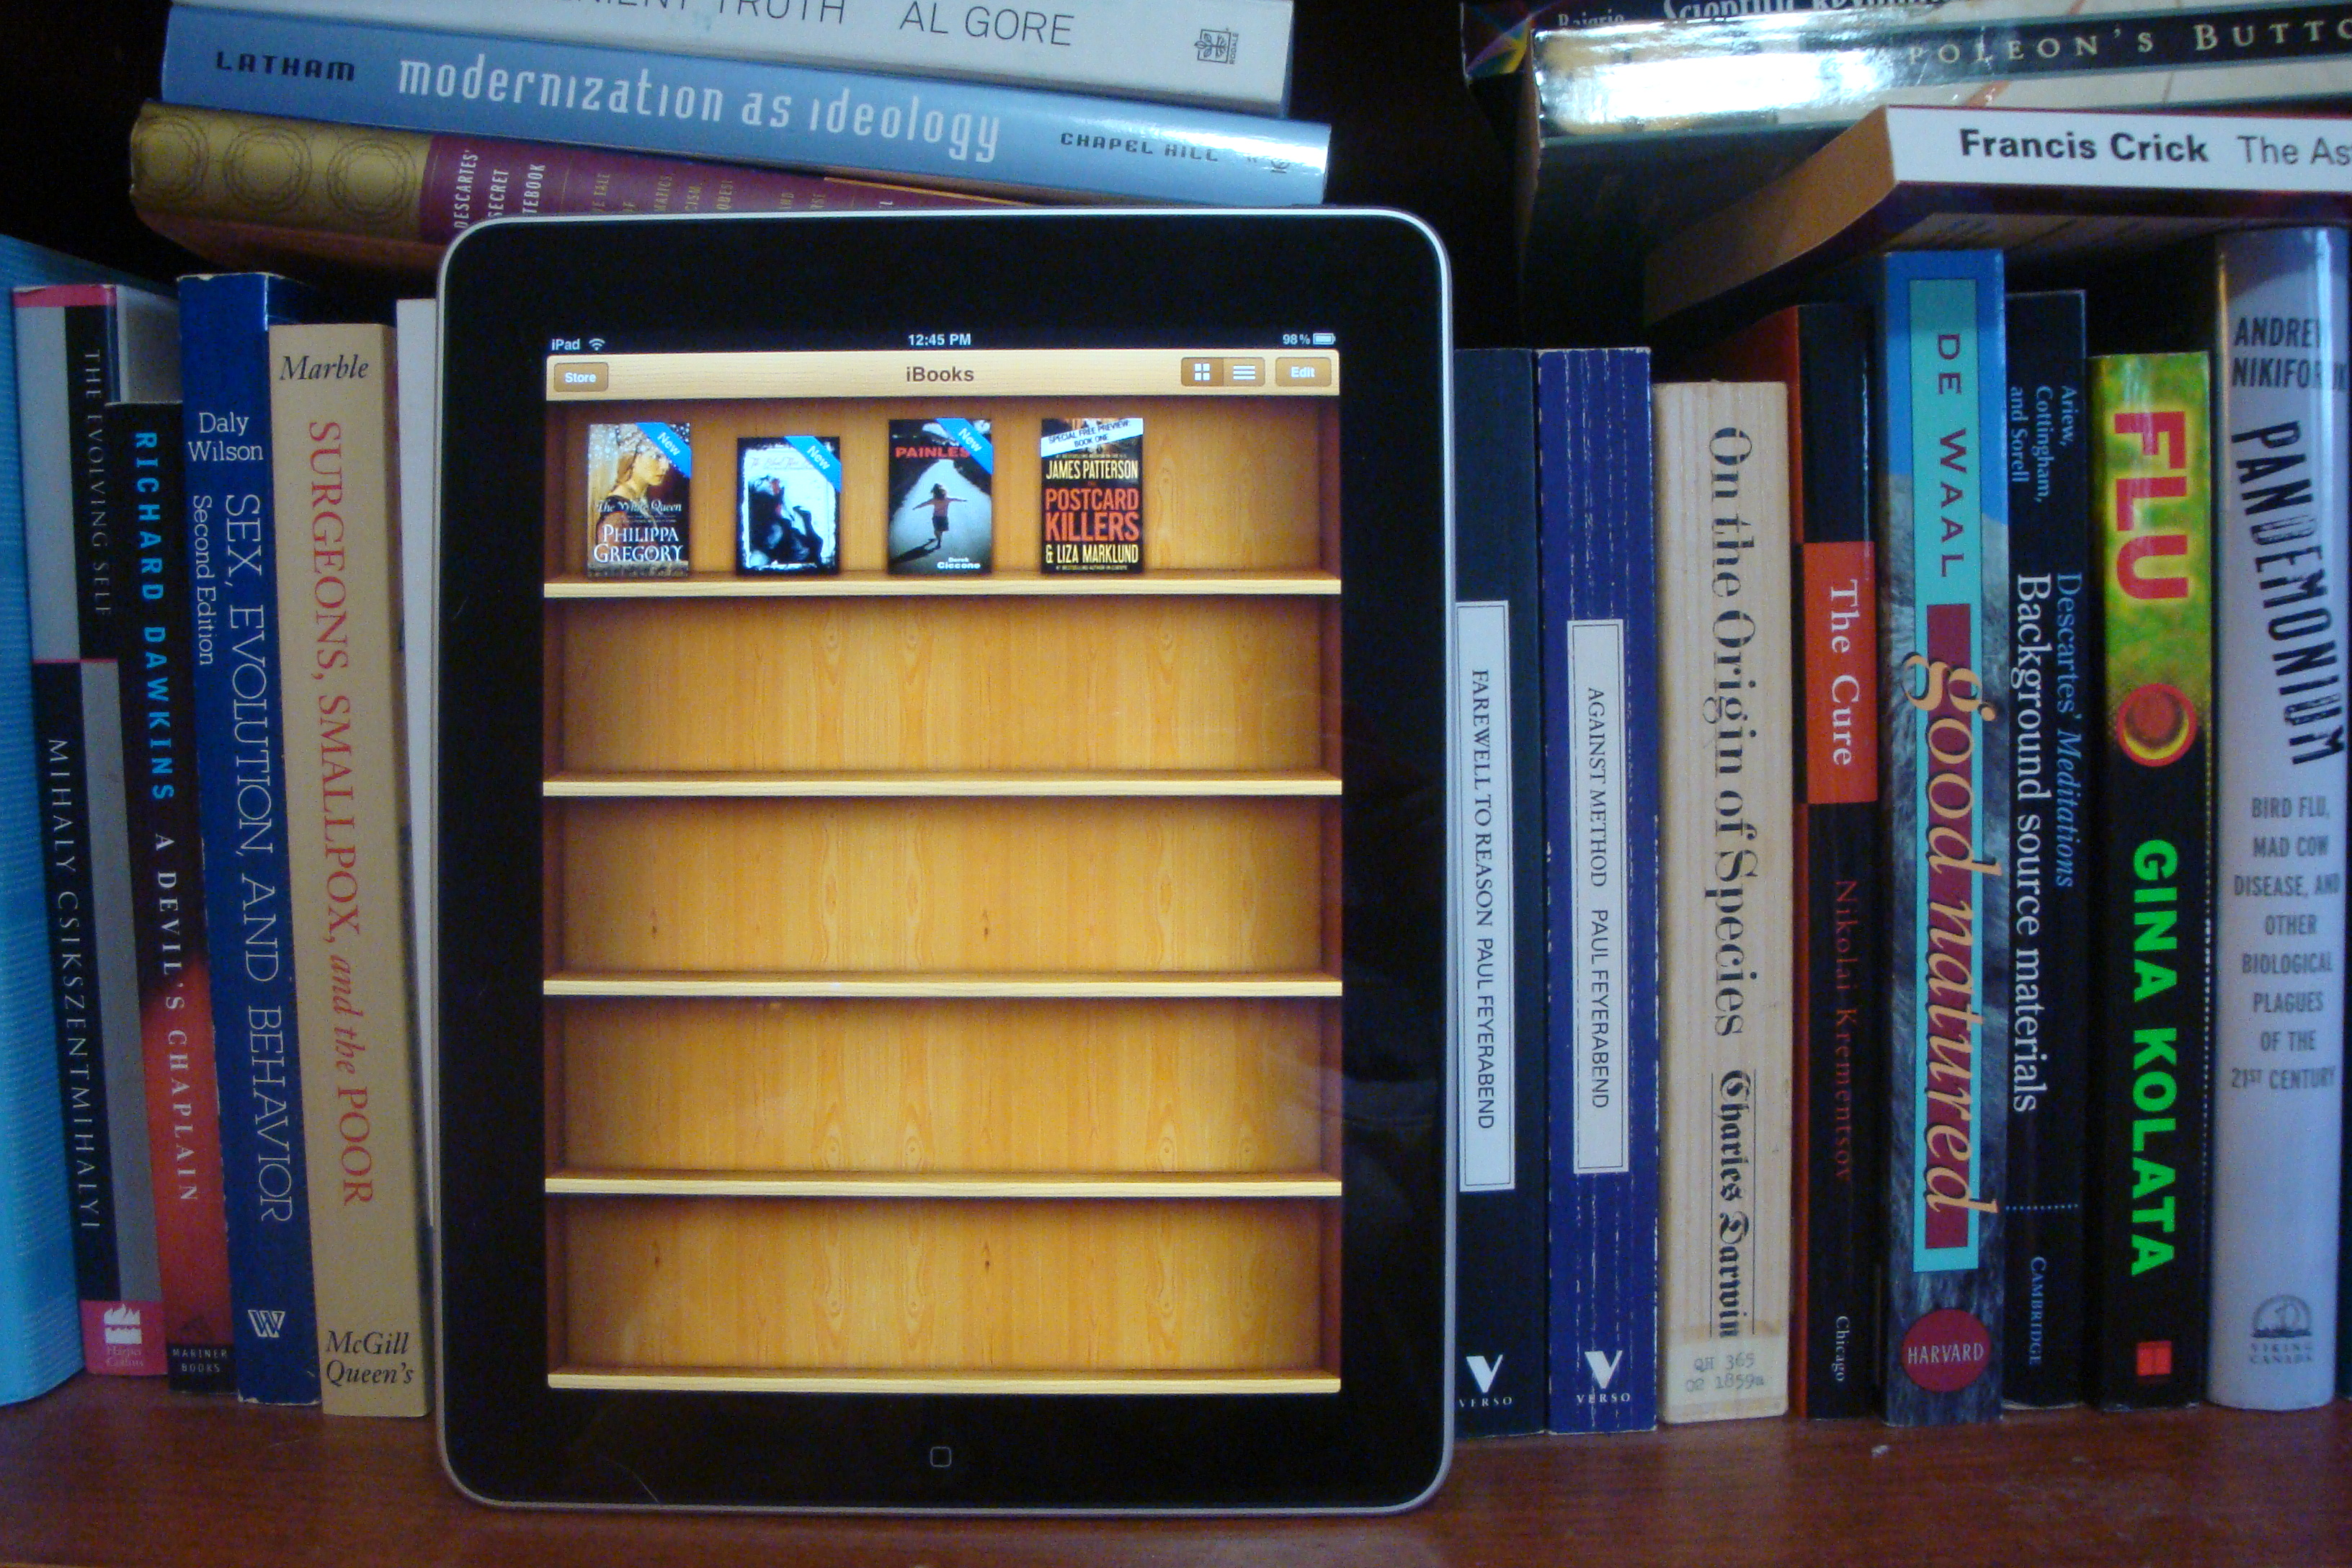 Be Sure To Check Out My Guest Post Over At Activehistory, On The Ebook  Revolution And The Transforming Print Paradigm